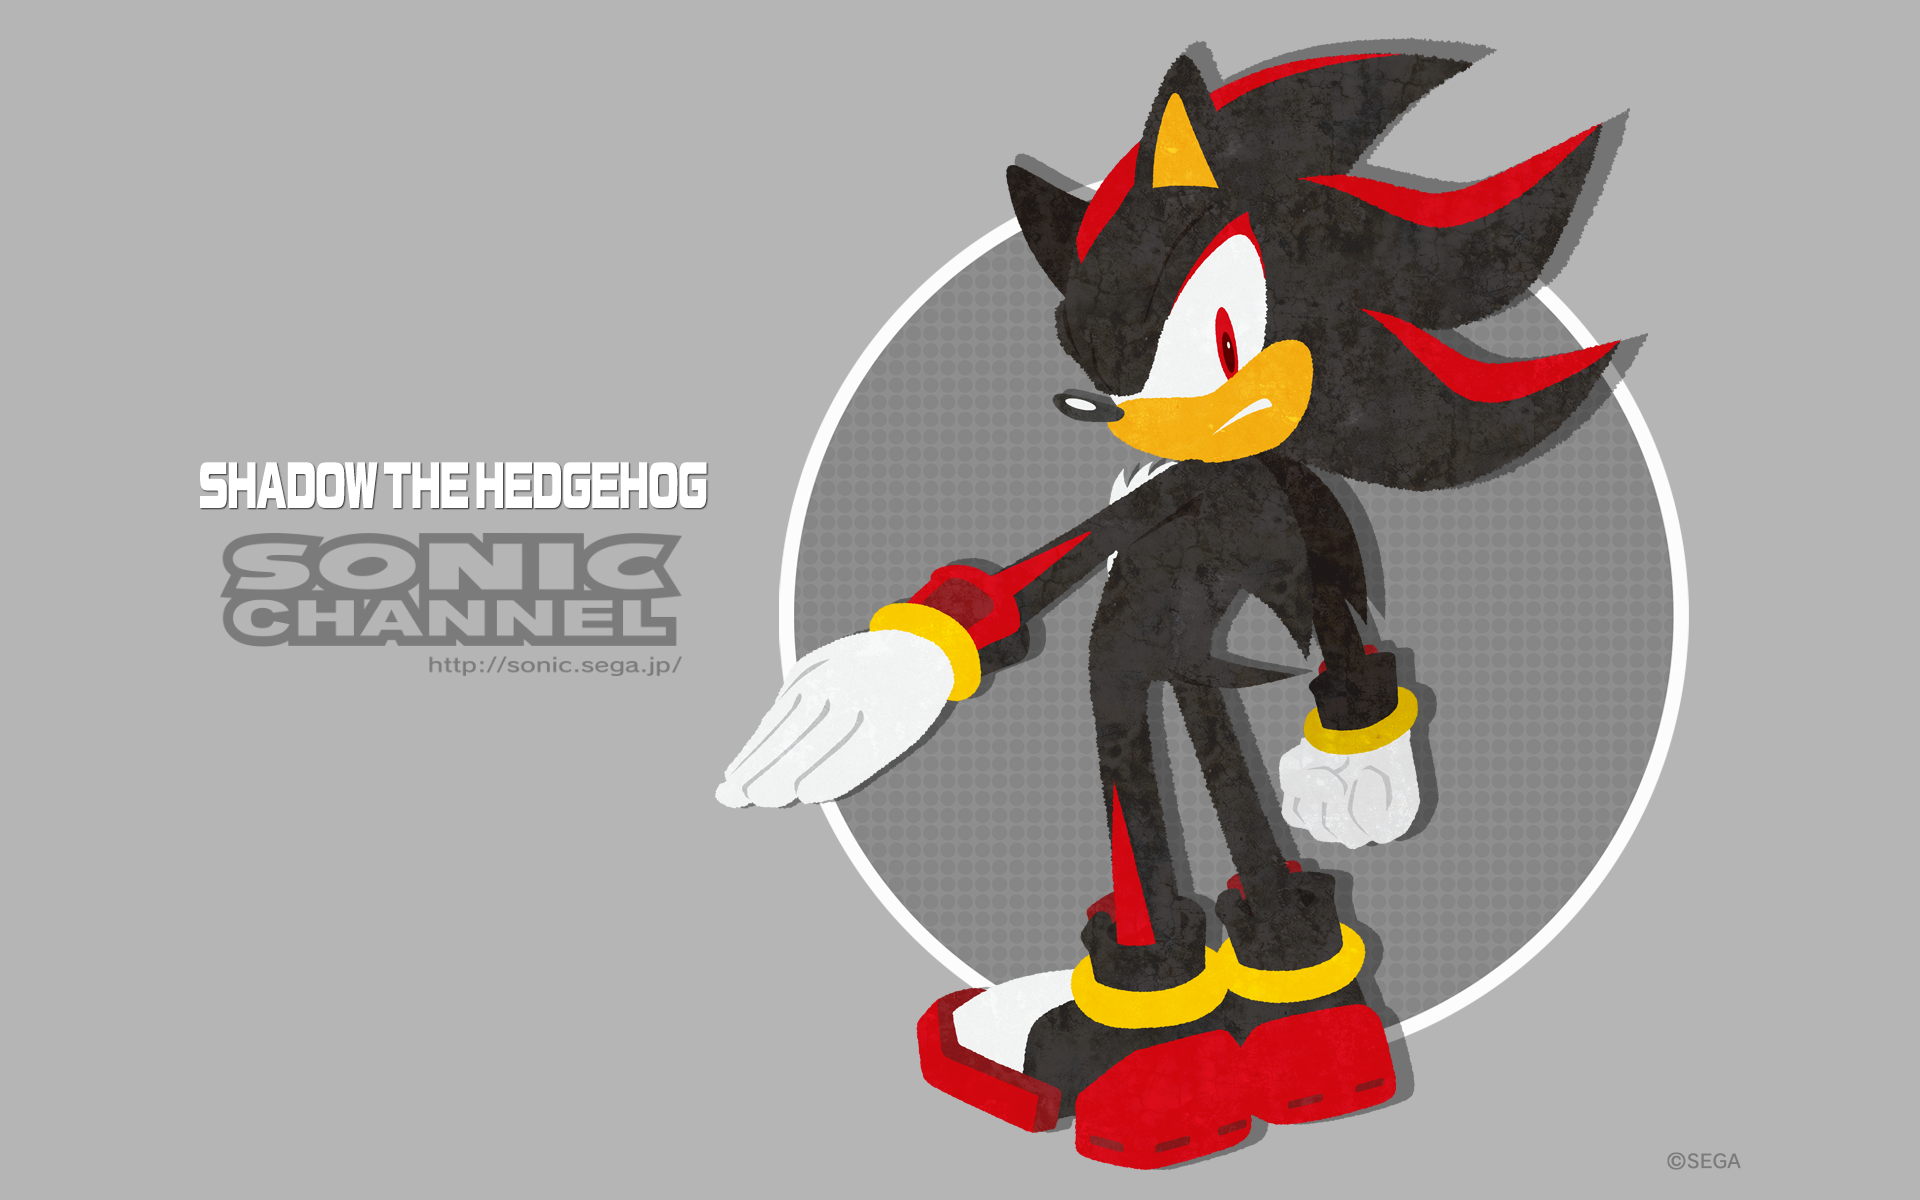 http://sonic.sega.jp/SonicChannel/enjoy/image/wallpaper_148_shadow_12_pc.png